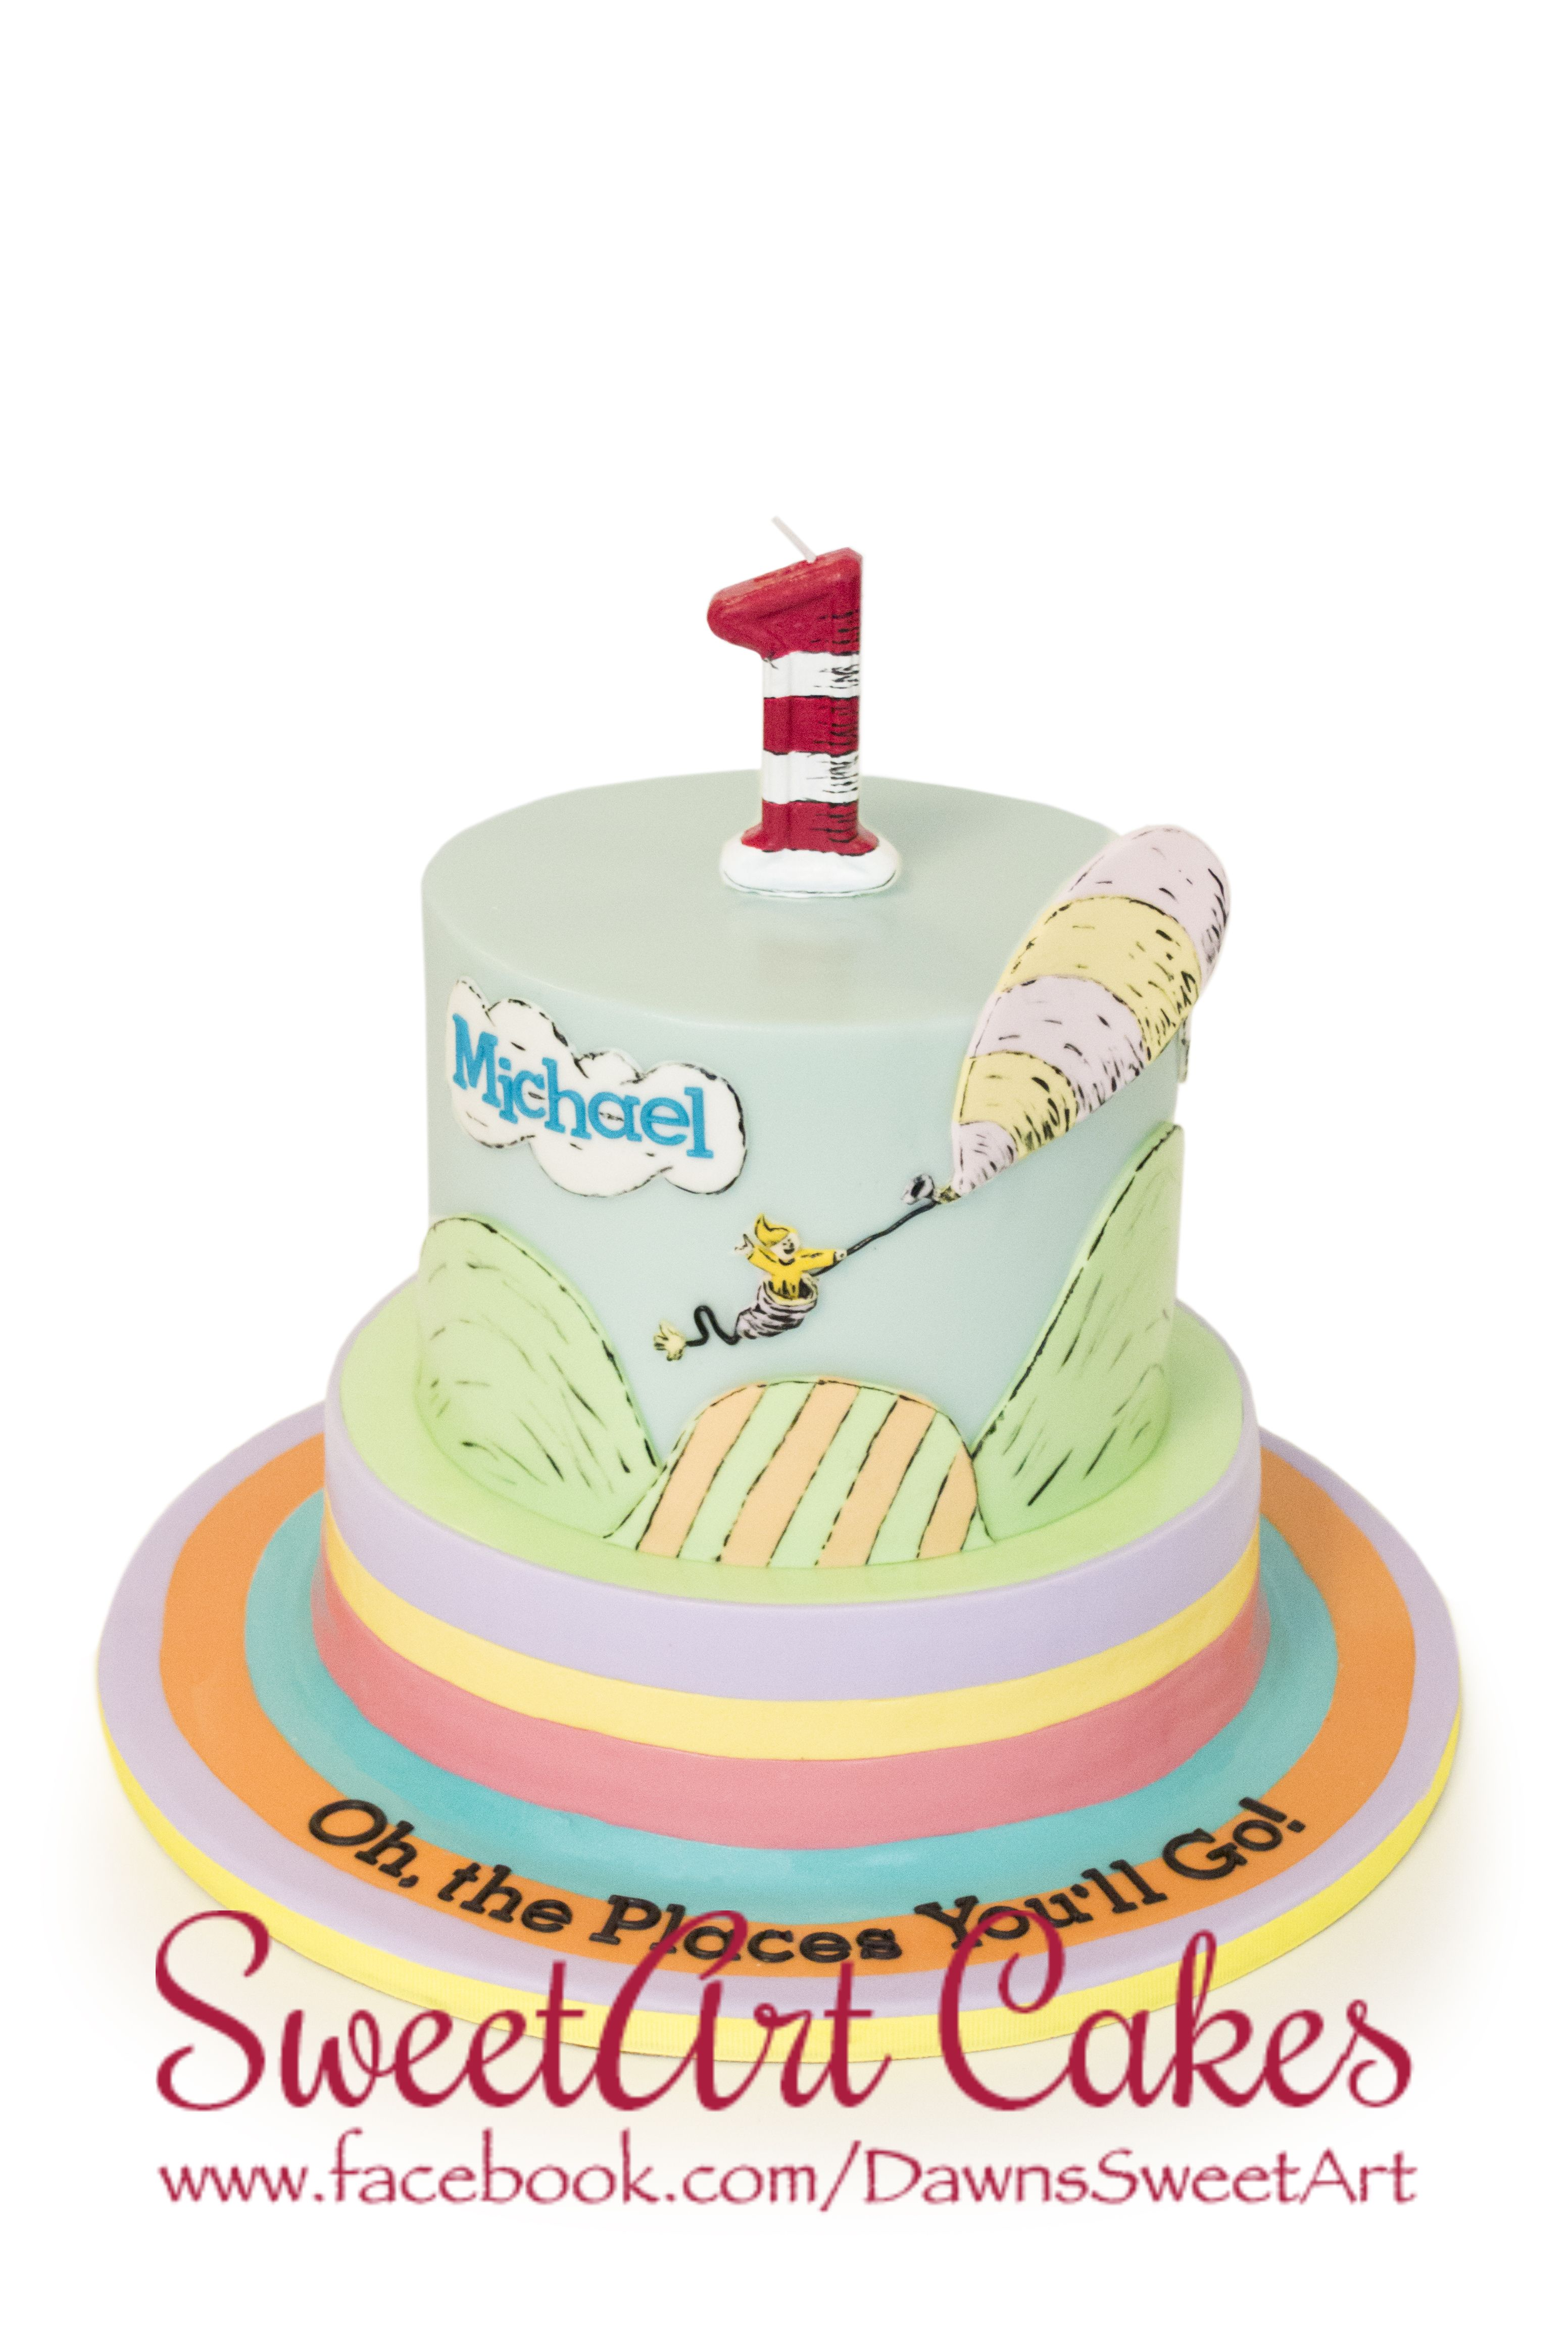 Astonishing First Birthday Cake Birthday Cake Oh The Places Youll Go Personalised Birthday Cards Veneteletsinfo